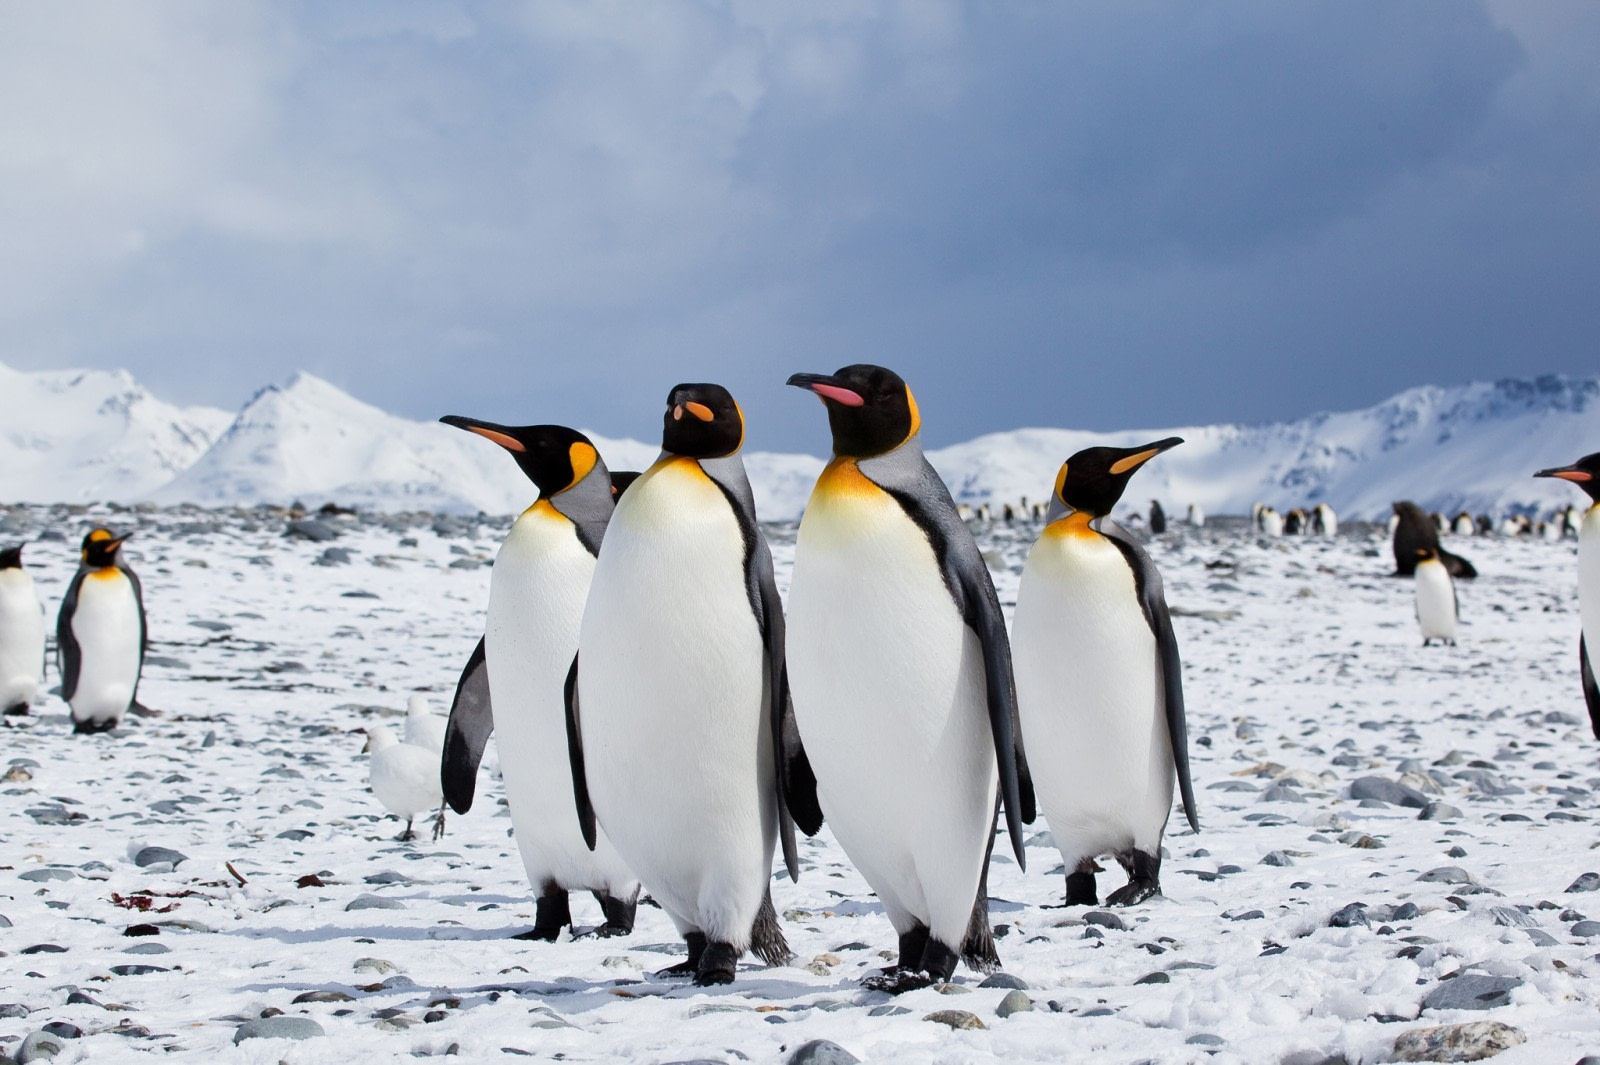 King Penguin | Facts, pictures & more about King Penguin